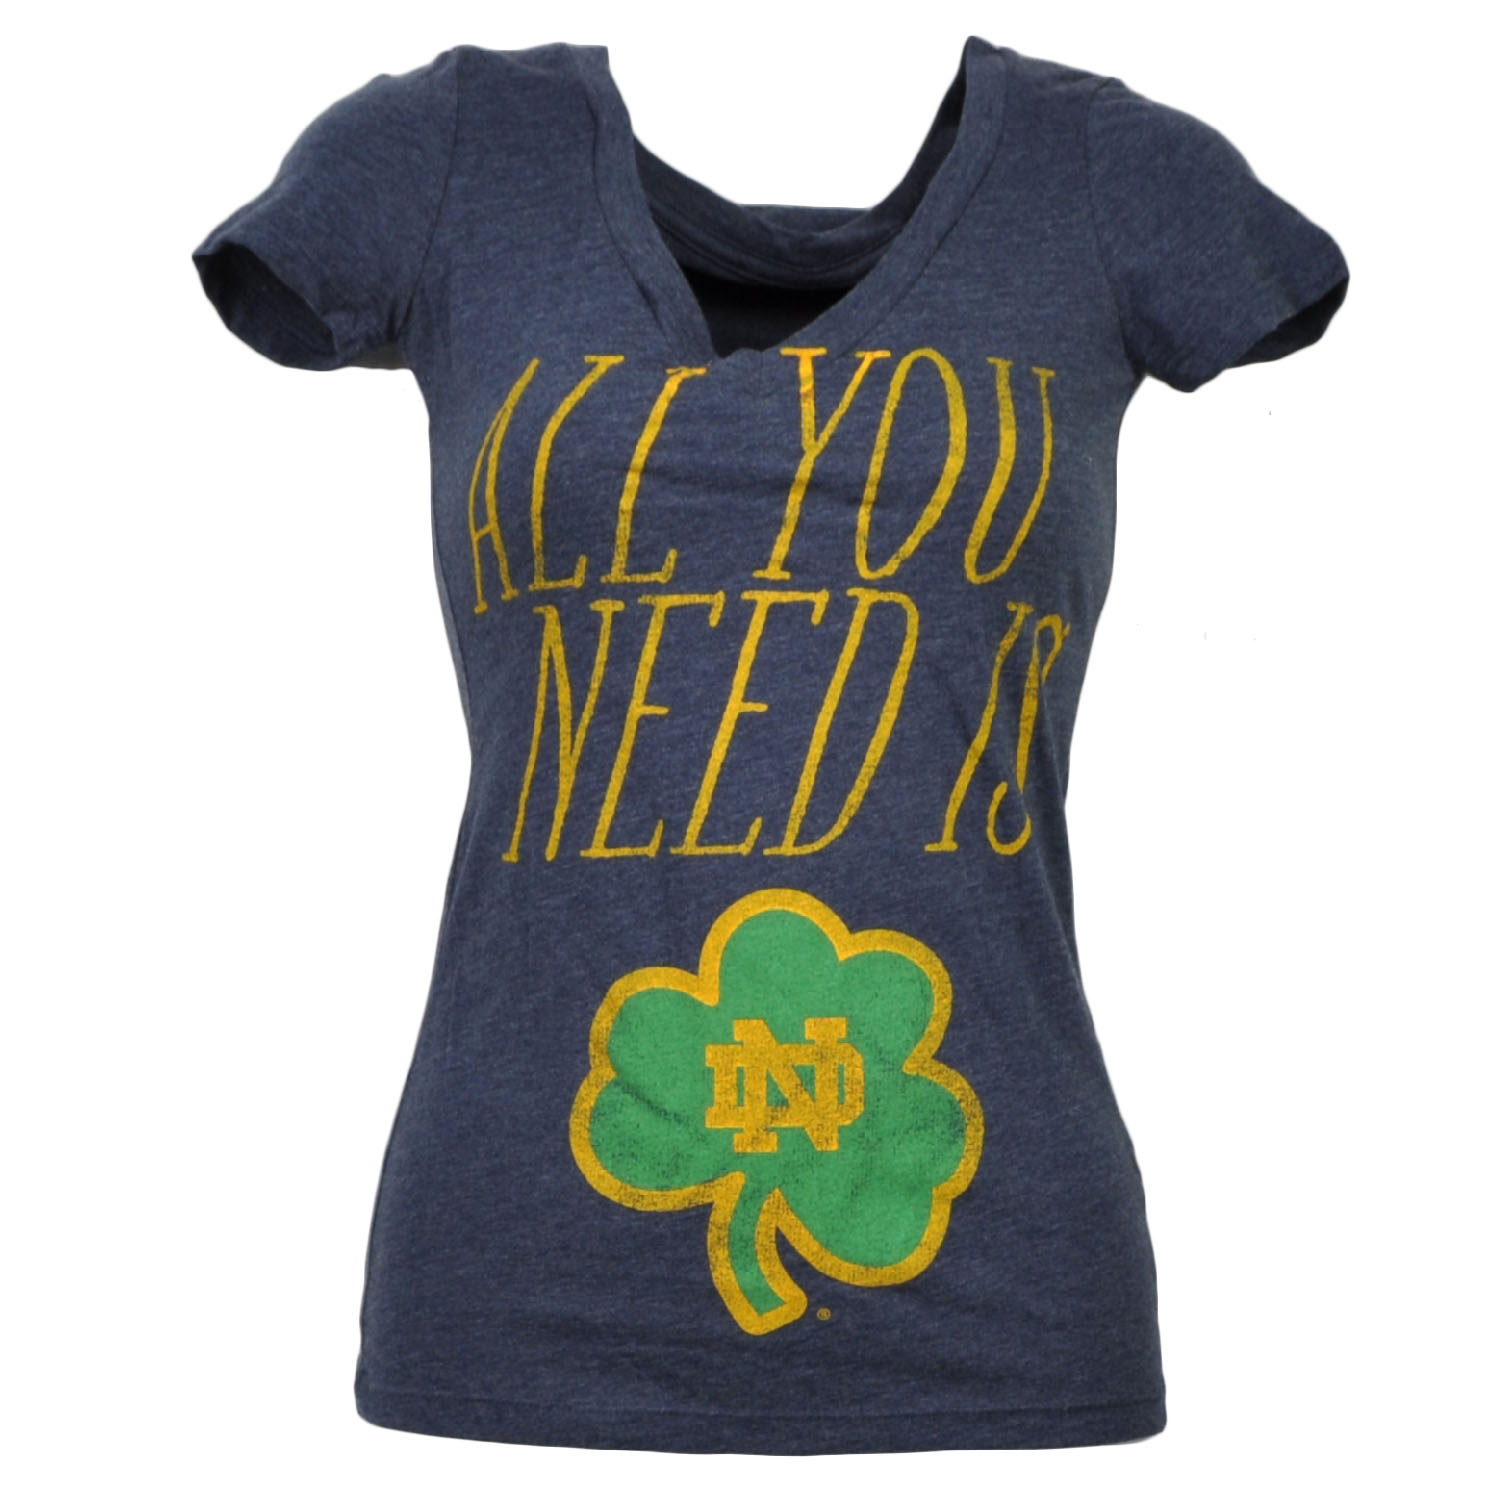 NCAA Notre Dame Fighting Irish All You Need Womens Tshirt Tee Blue V Neck XSmall